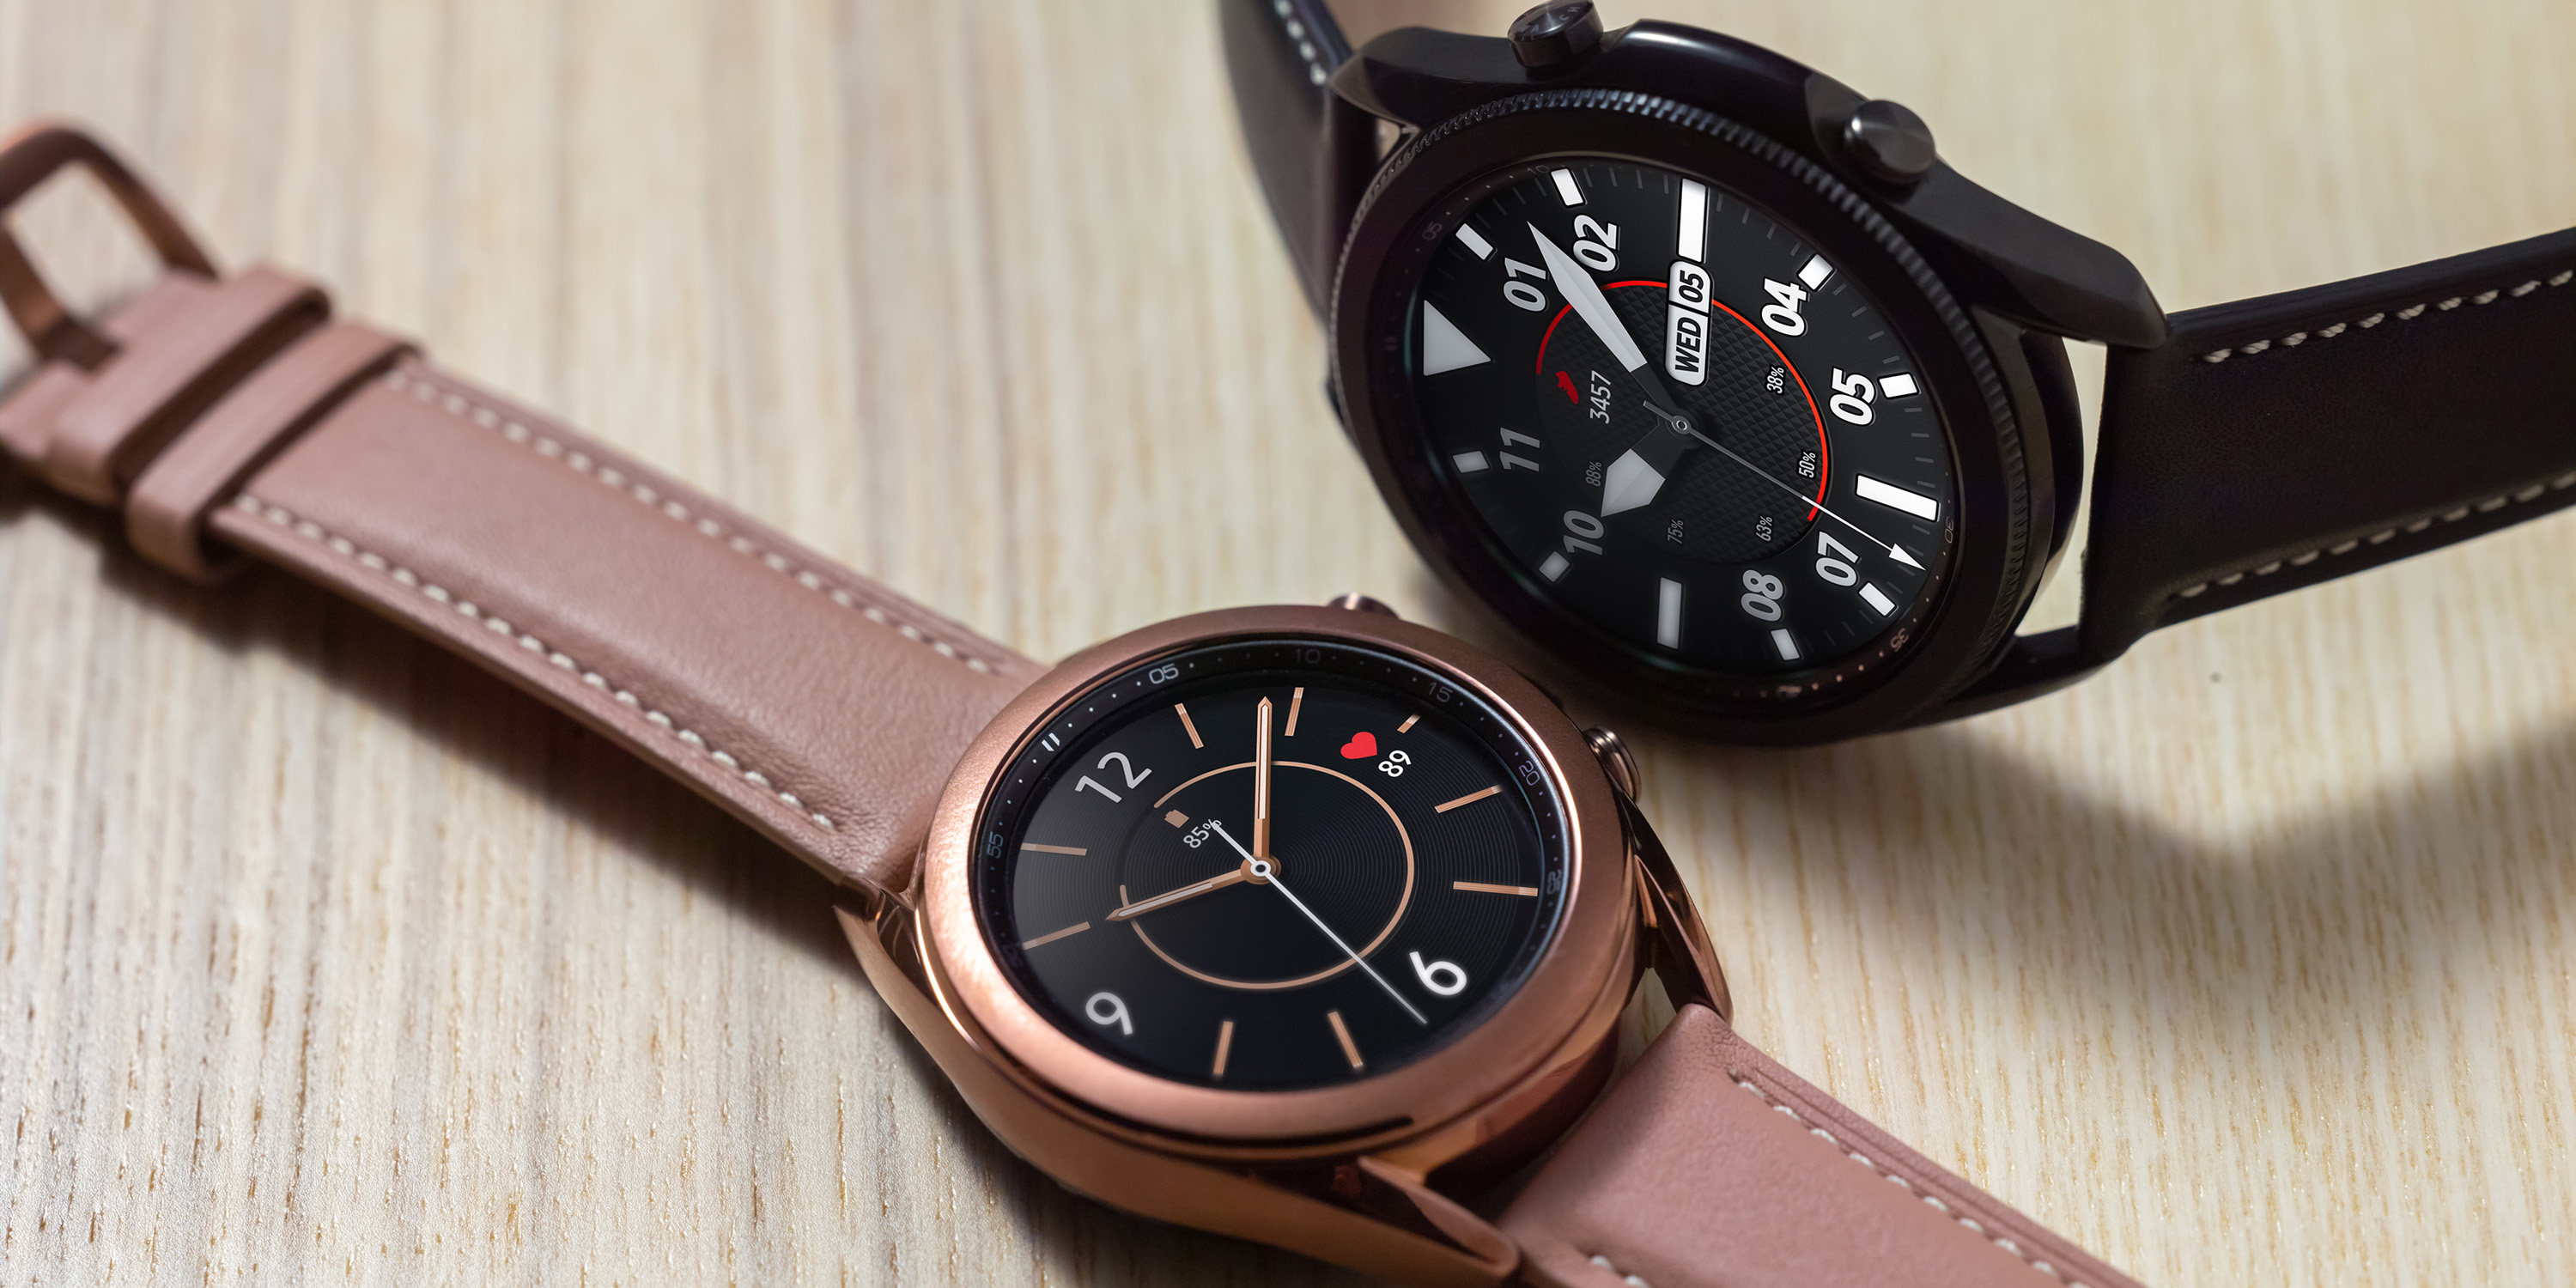 During today's all-digital Galaxy Unpacked event, Samsung took the lid off of the Galaxy Watch 3, the company's strongest competitor against the A